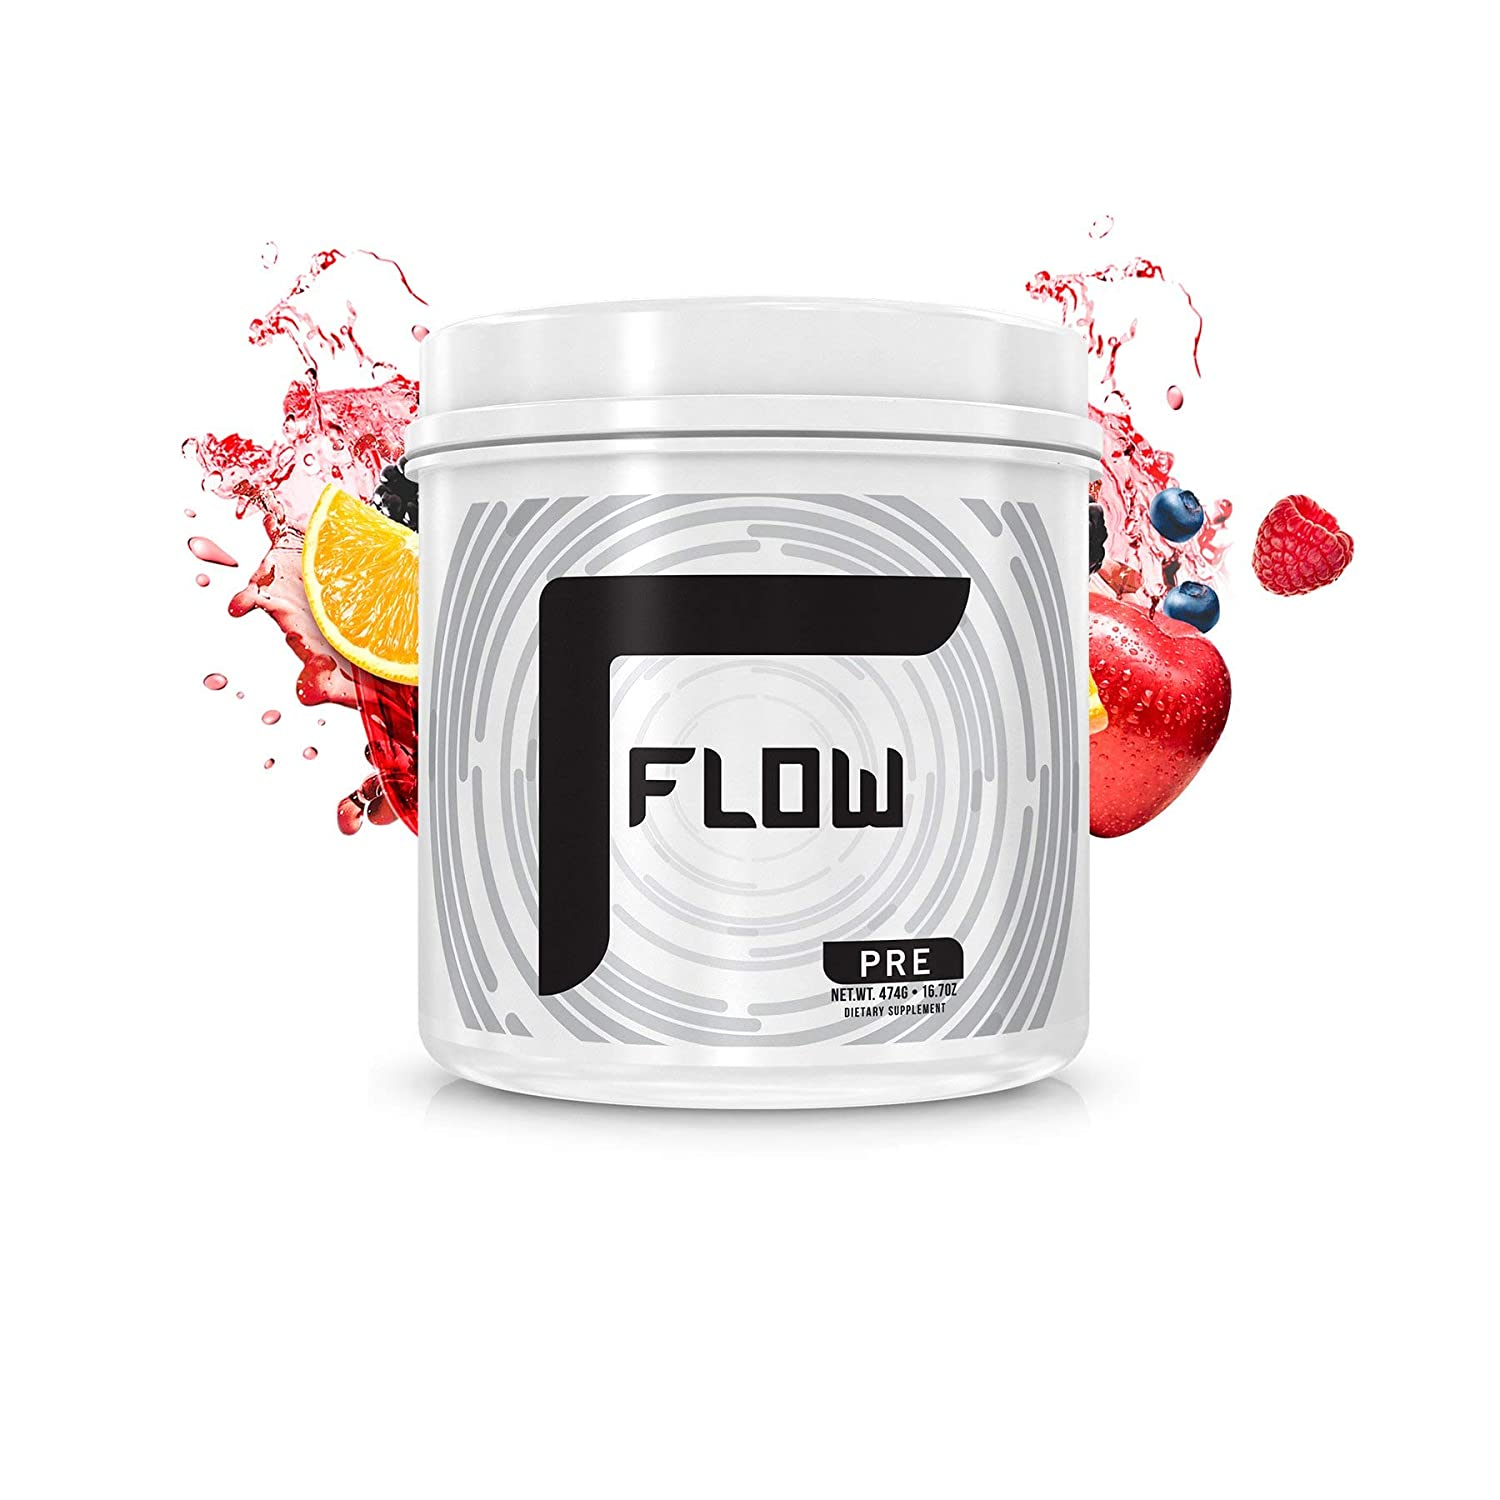 Flow Supplements by Zachary Levi Pre Workout Powder Caffeine Focus Nitric Oxide Creatine Free Beta Alanine Taurine Green Tea Extract Citrulline 30 Serving Fruit Punch